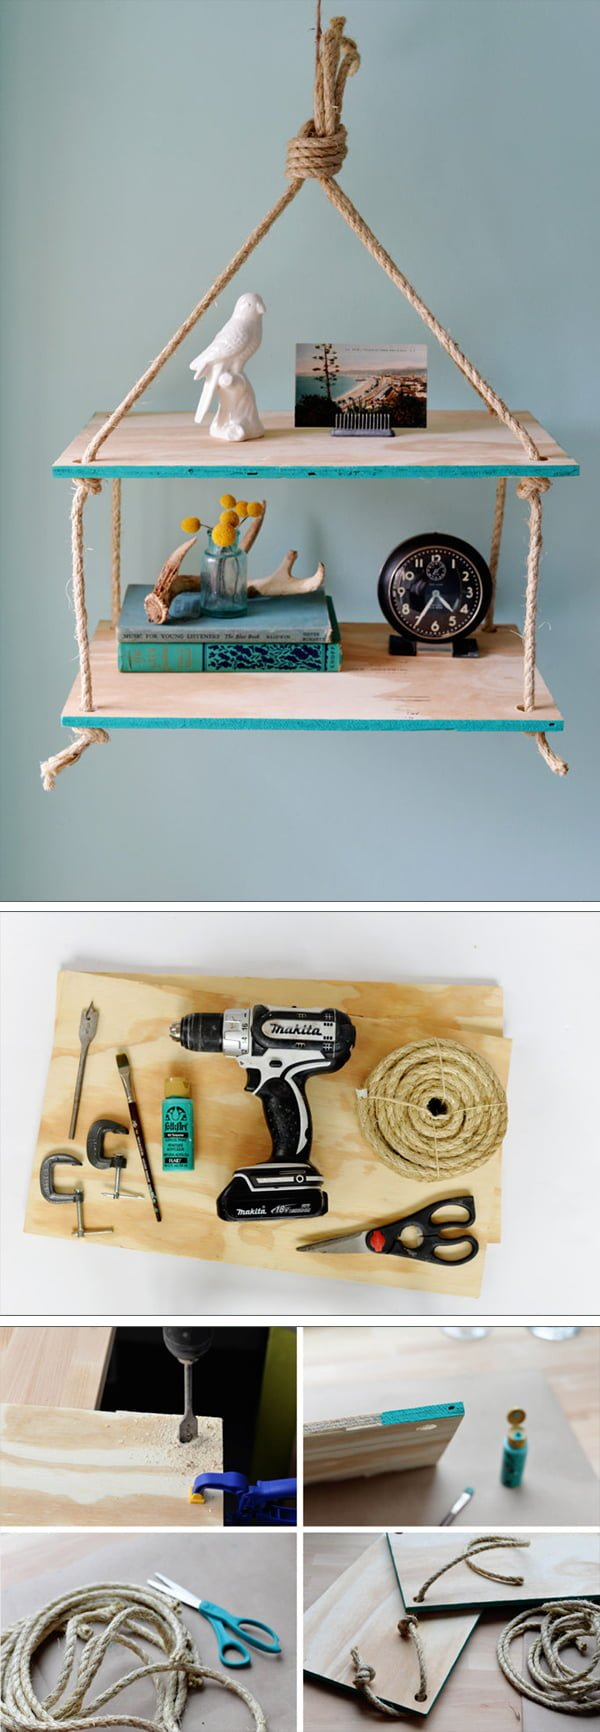 Check out the tutorial how to make a DIY hanging rope shelf